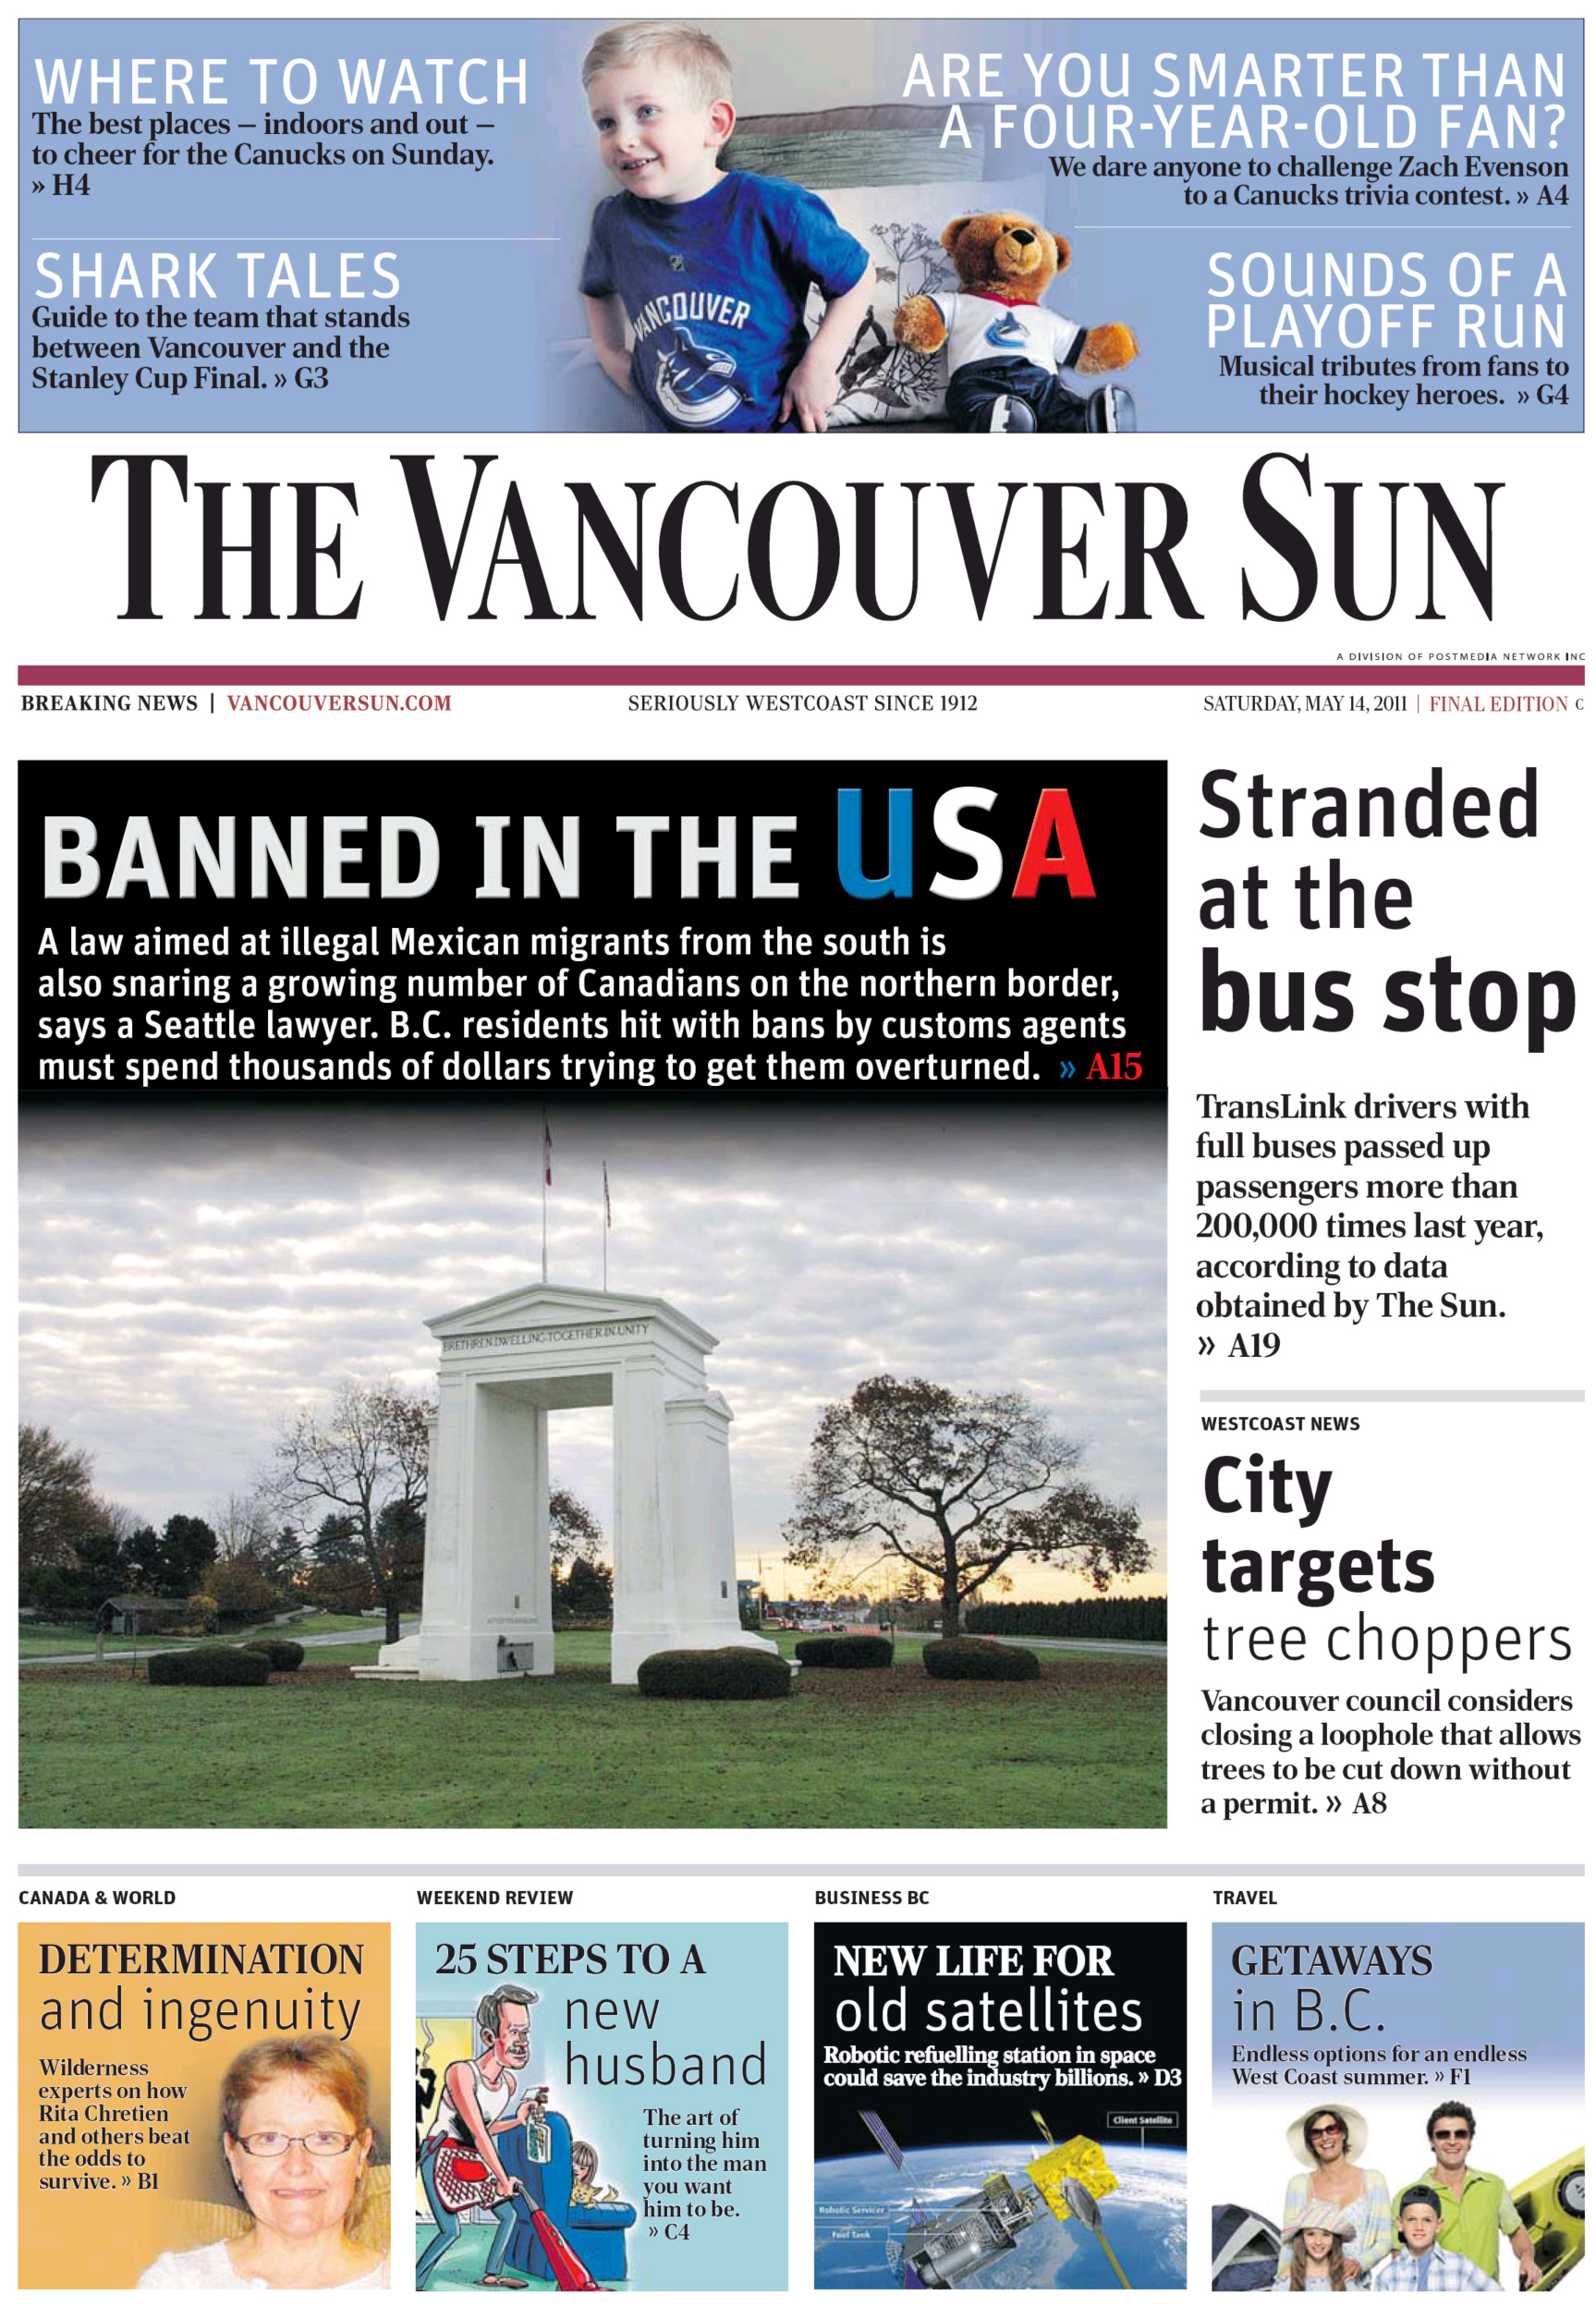 The Province Digital - The Vancouver Sun - 14 May 2011 - Page #1